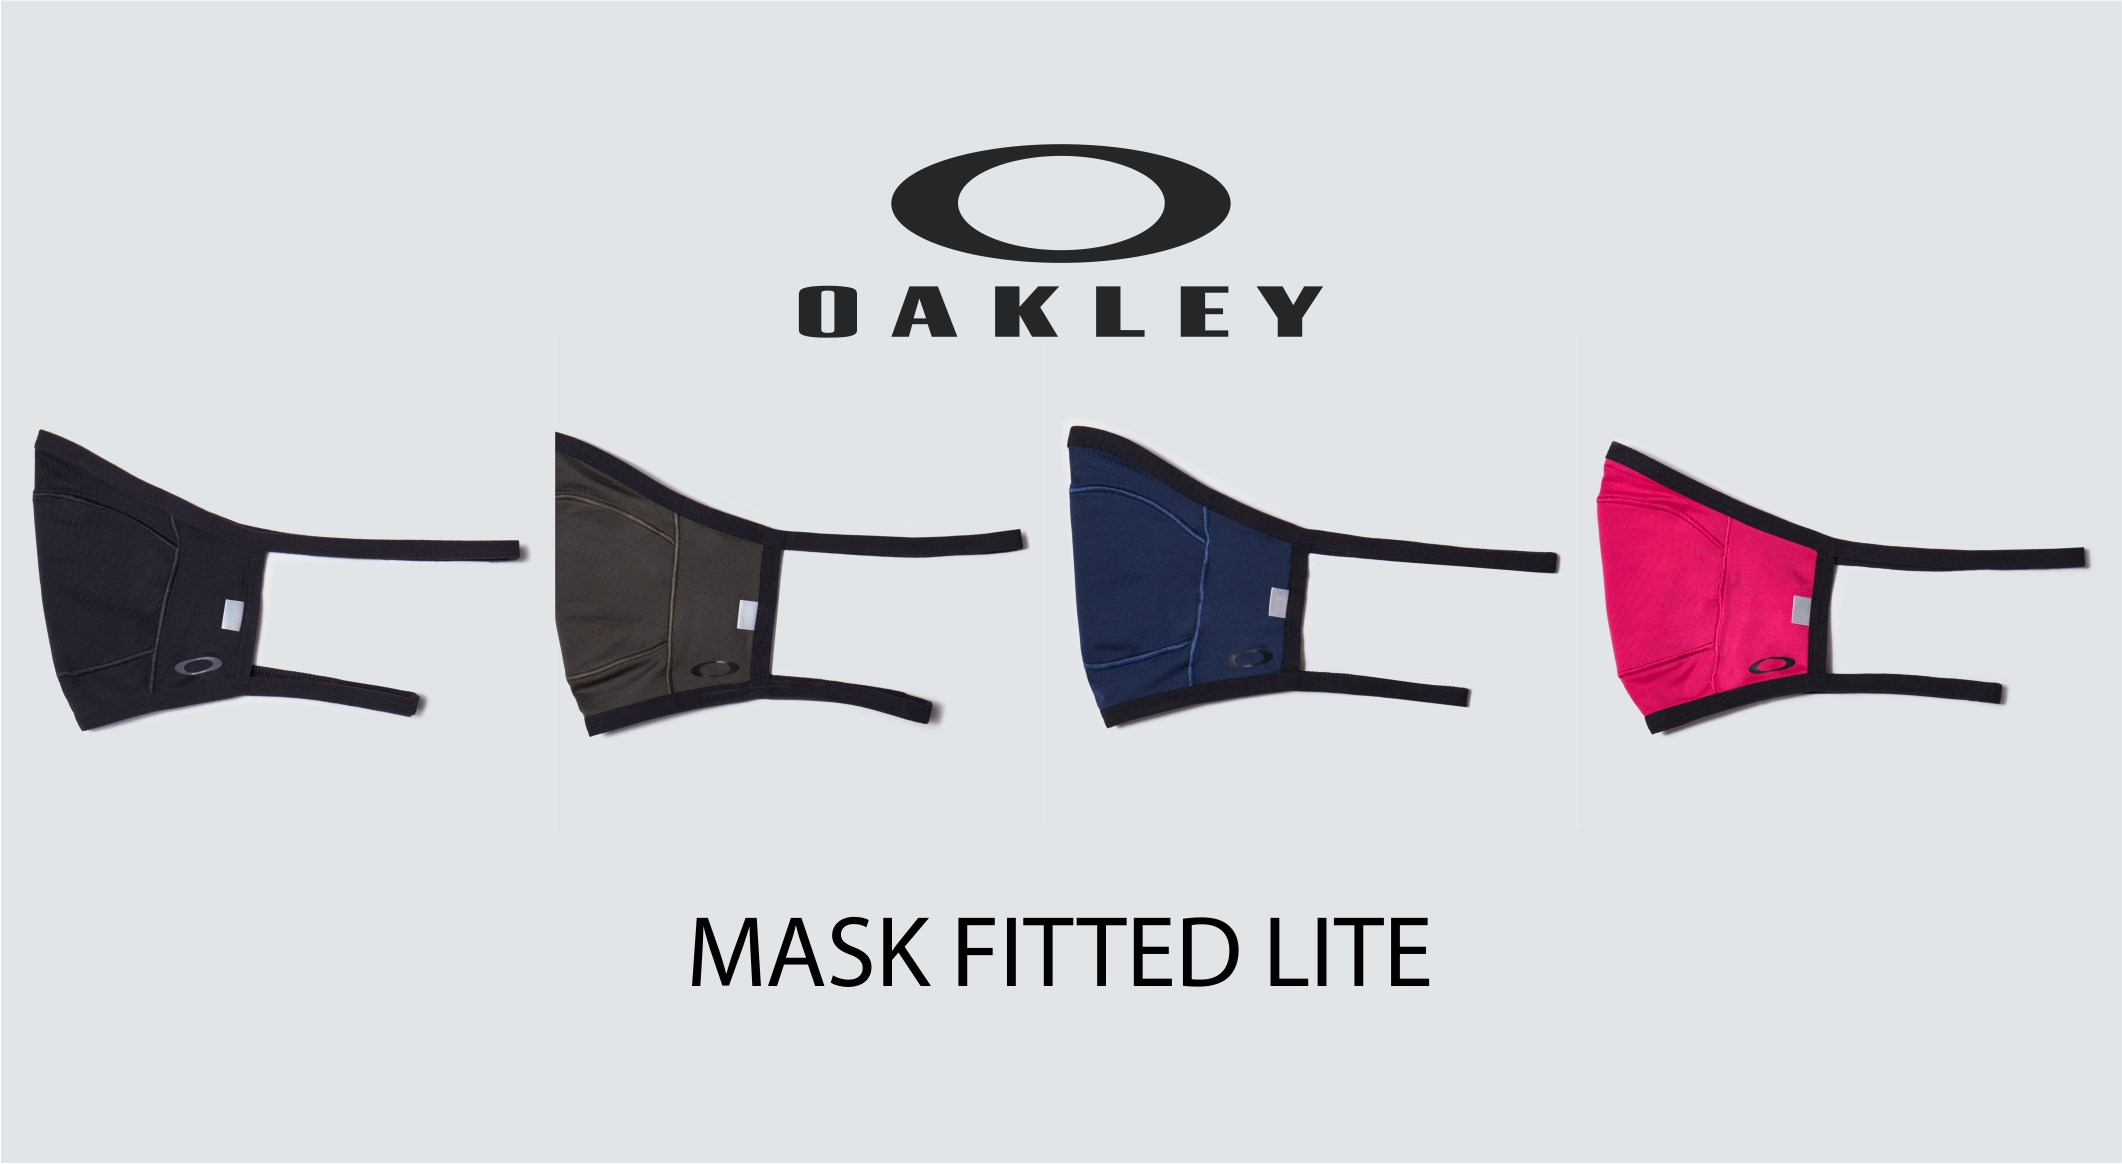 Tapabocas Oakley Mask Fitted Lite